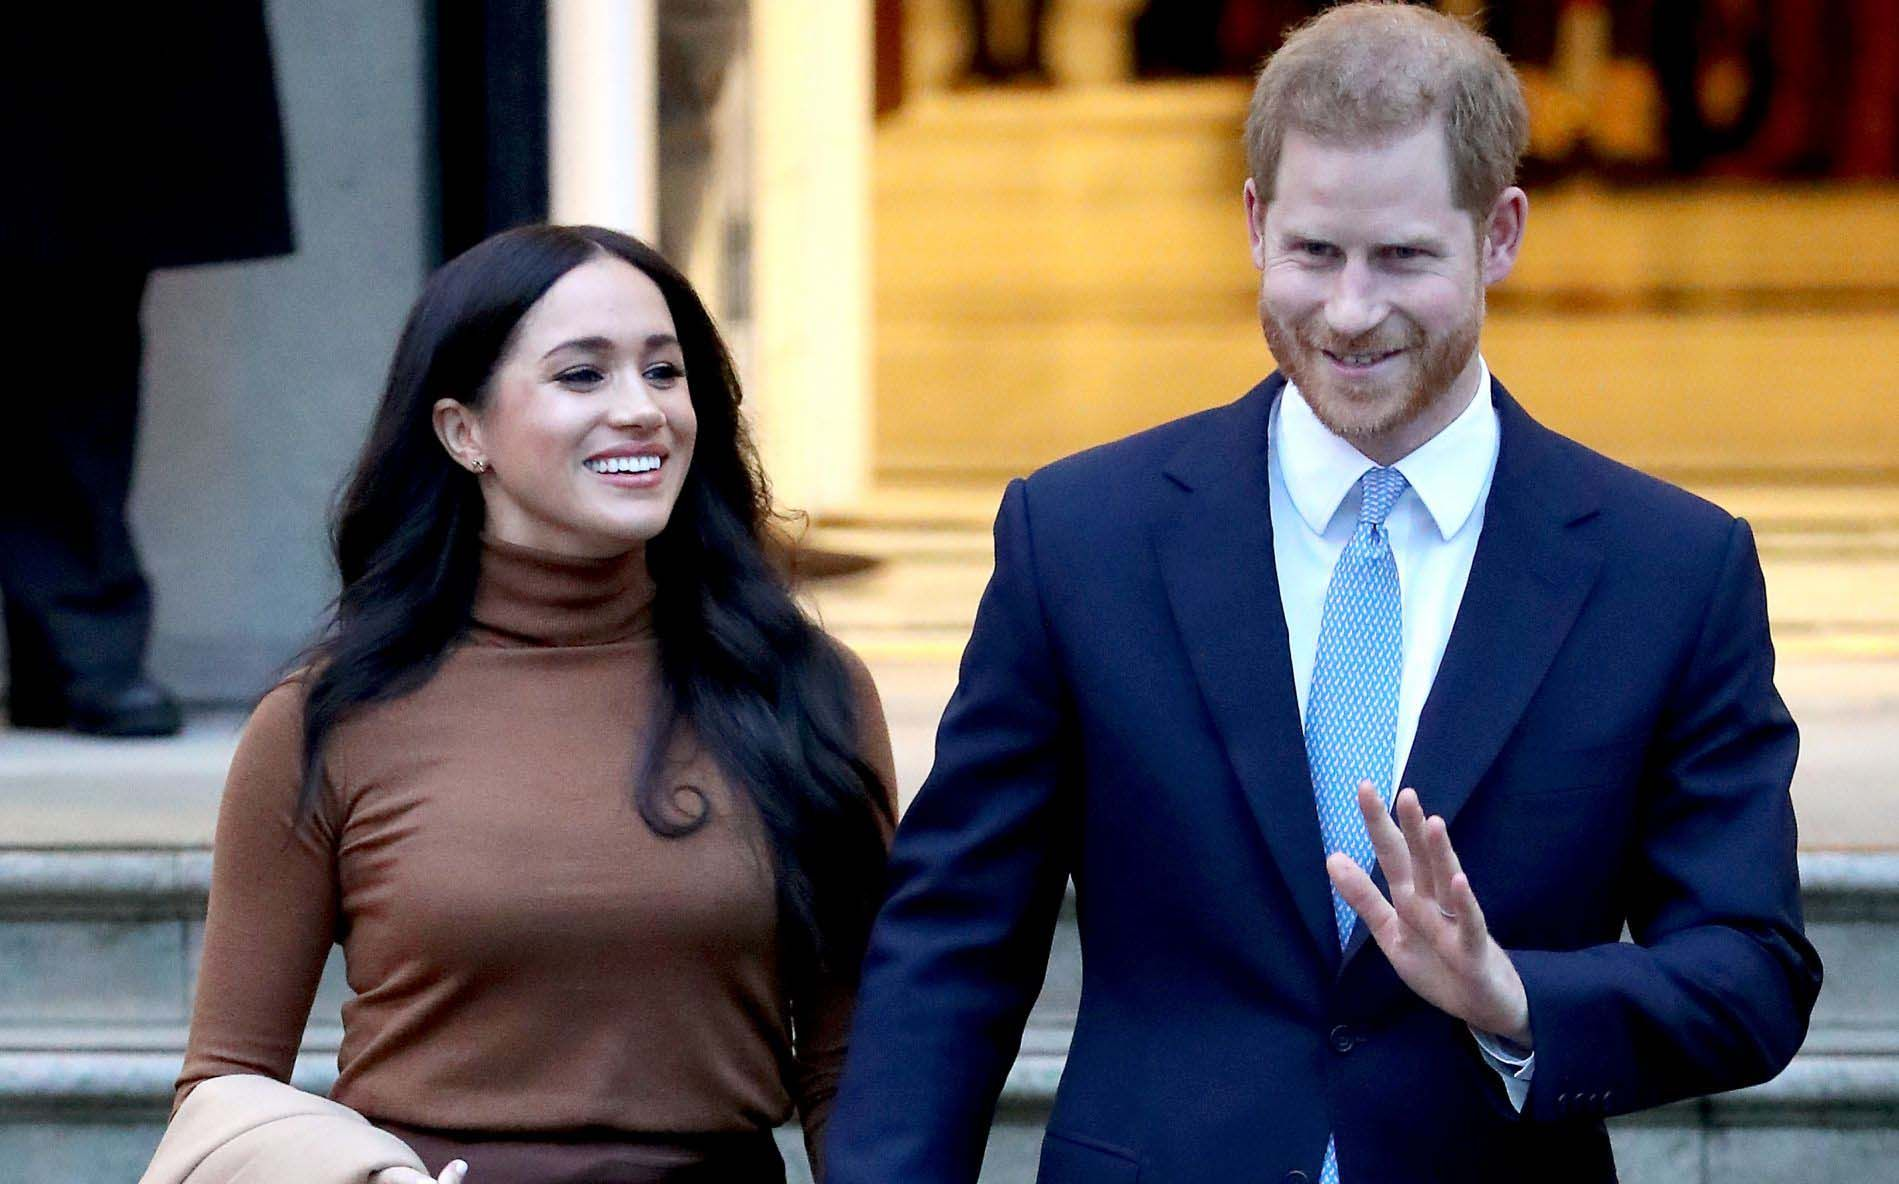 Prince Harry & Meghan Markle Announce Step Away From Senior Royal Roles